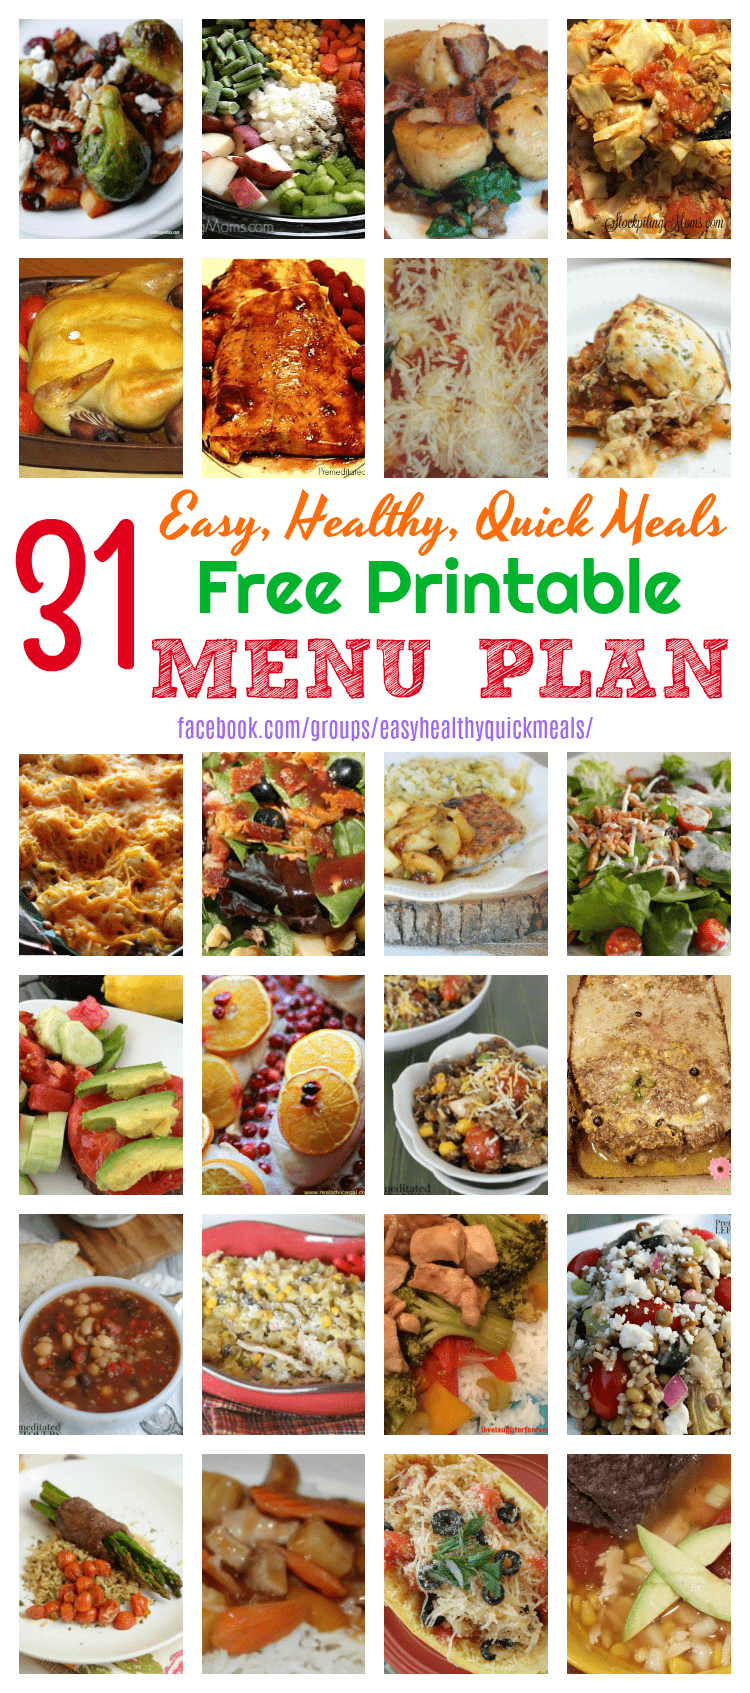 December Menu Plan with 31 healthy dinner recipes that are quick and easy to make.